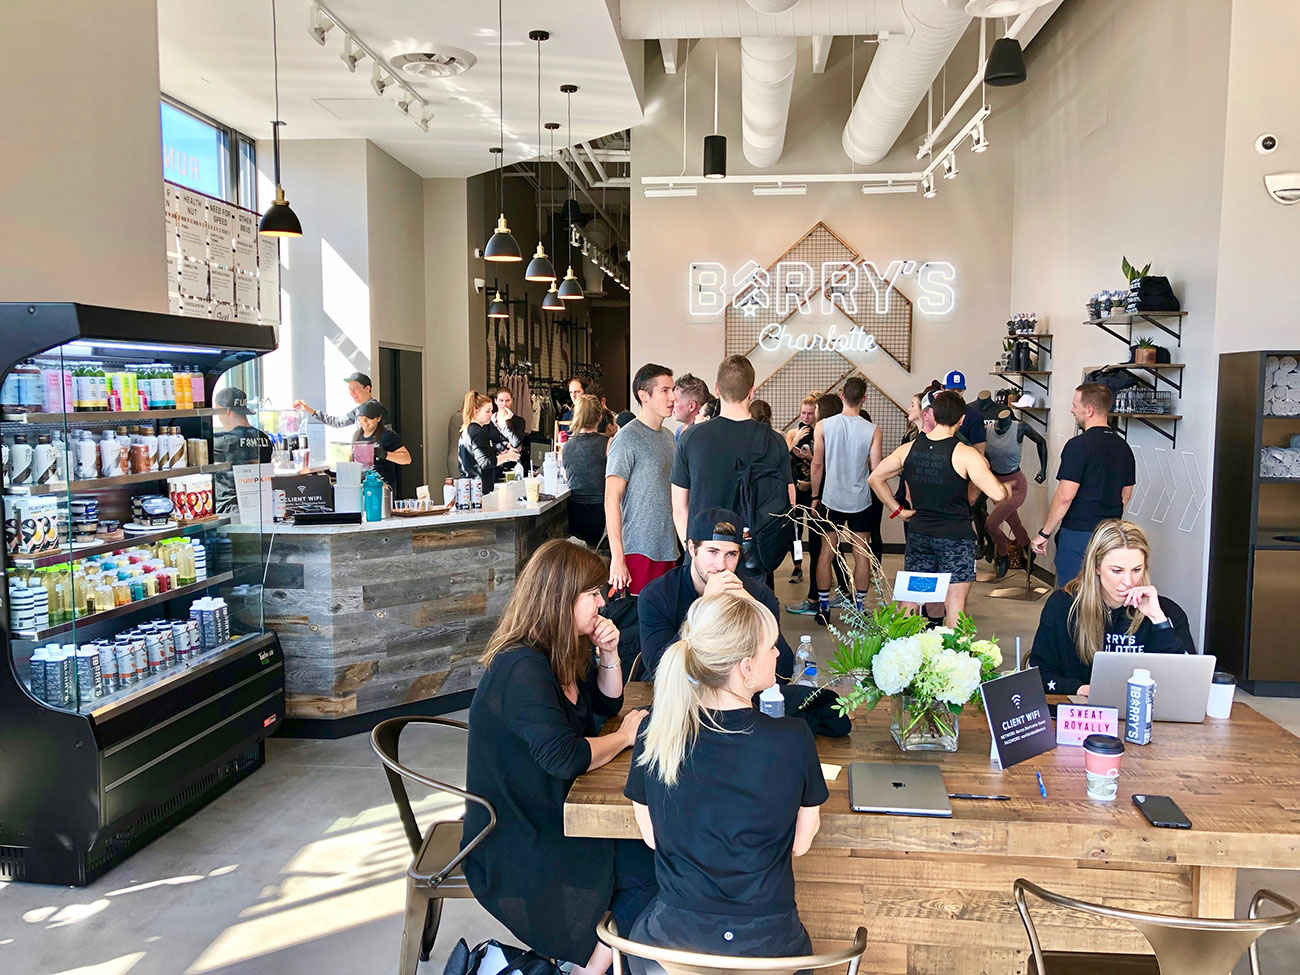 Barry's Bootcamp now open at Atherton